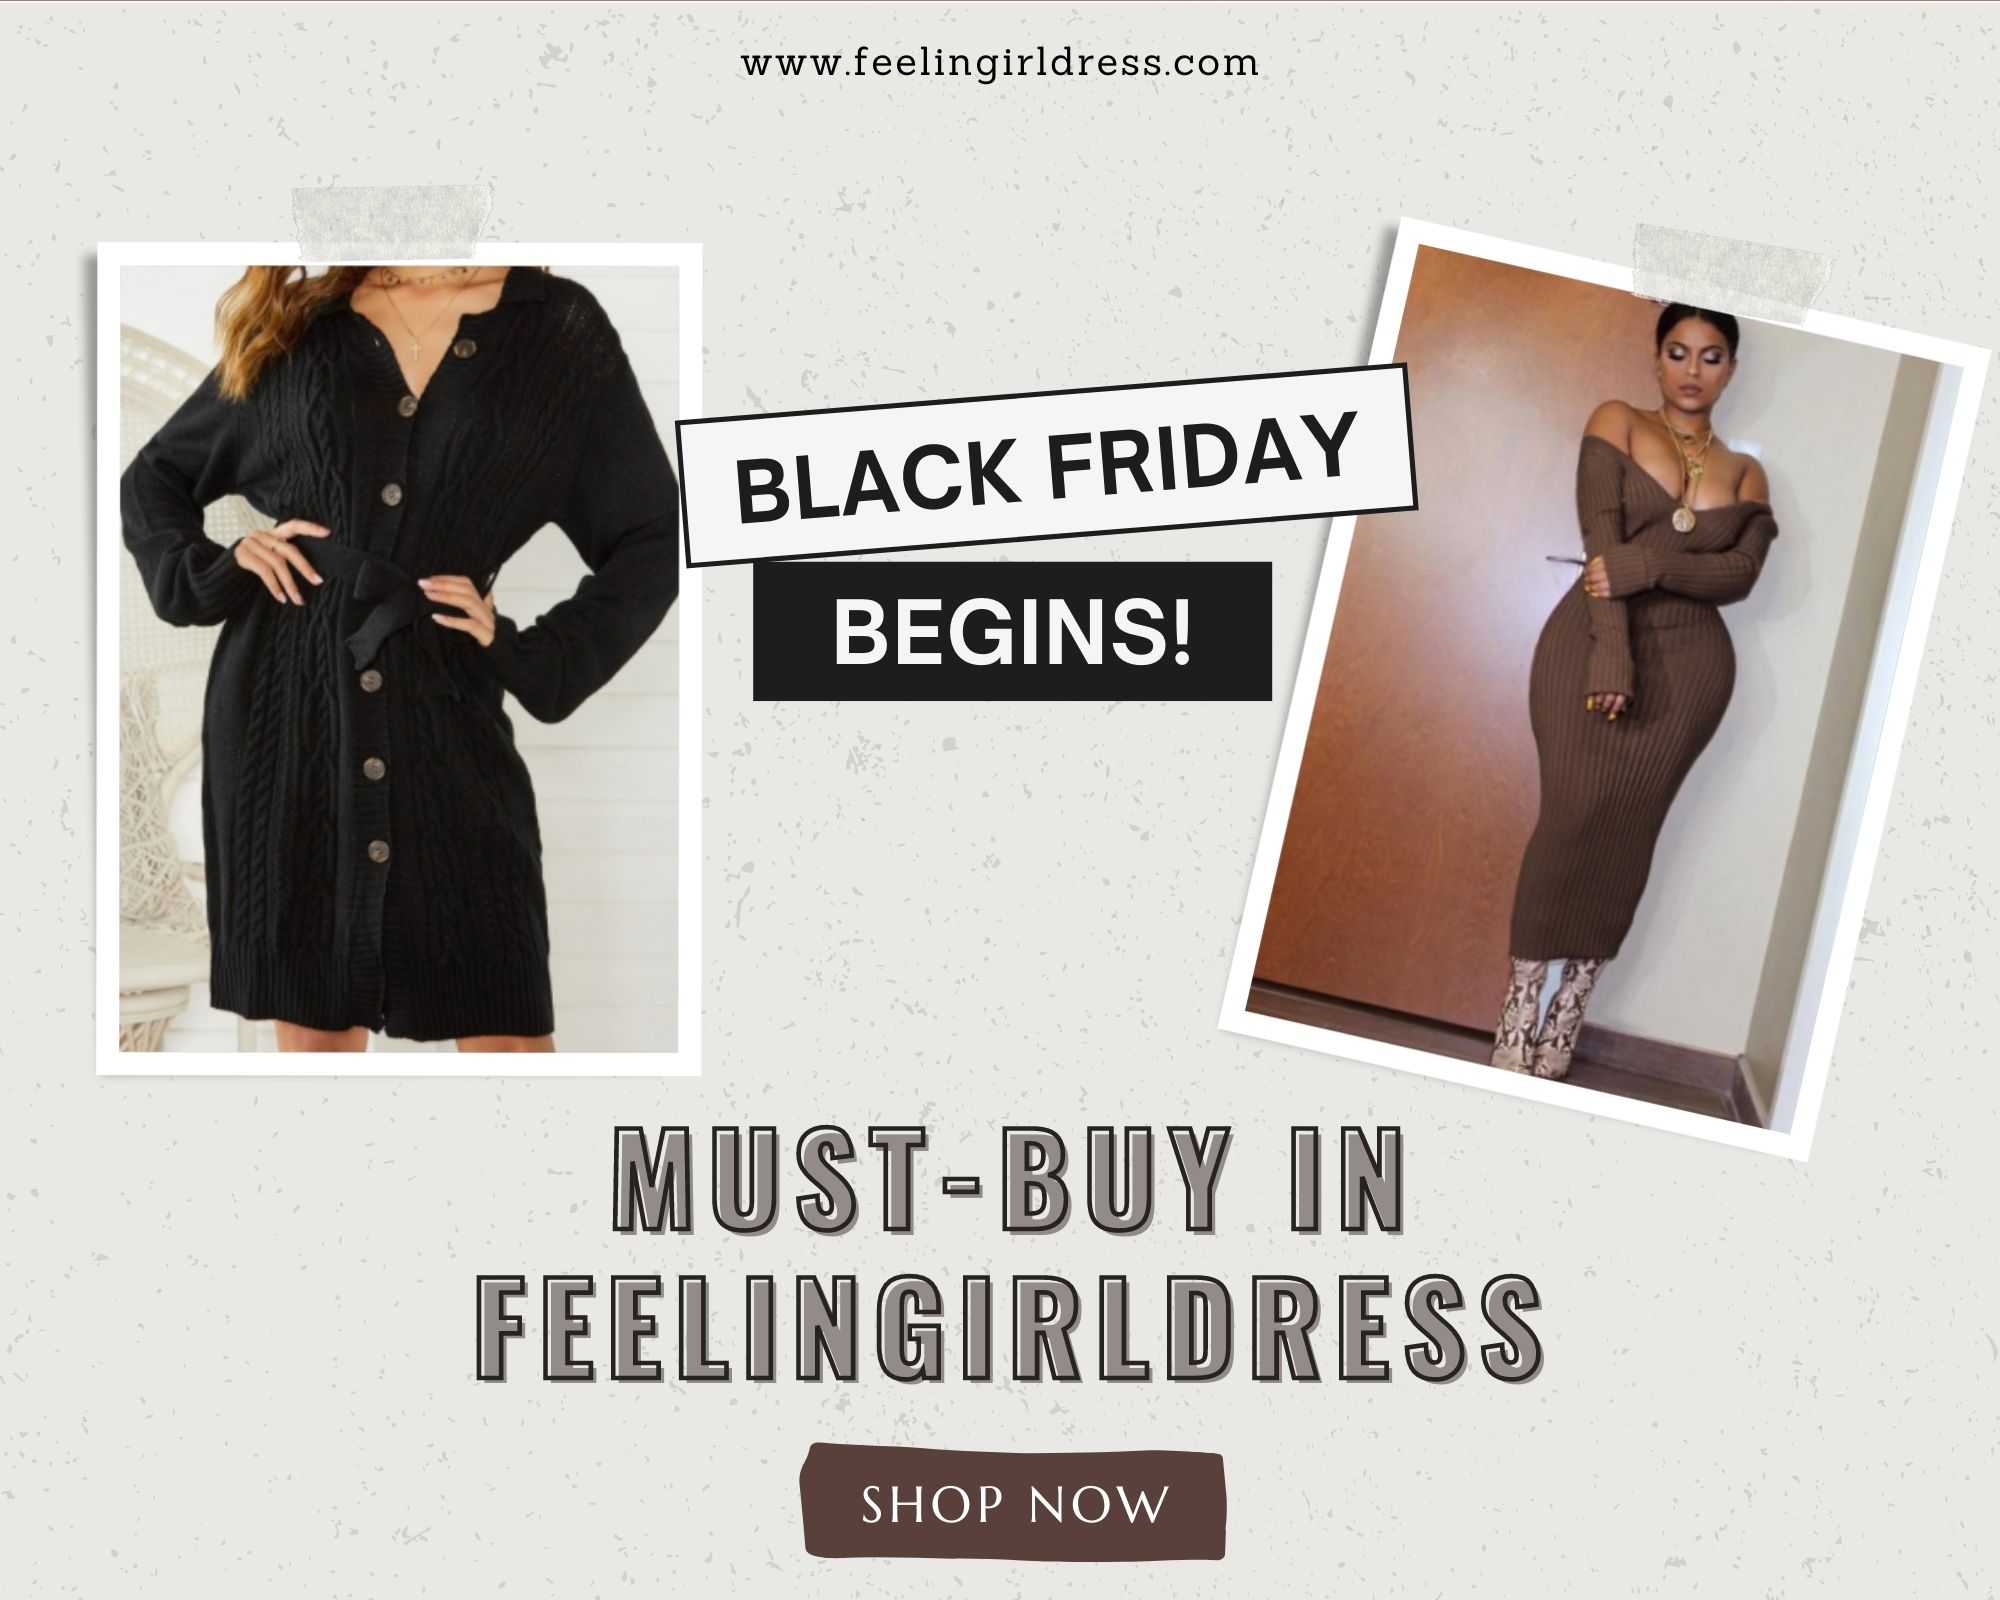 Must-buy in FeelinGirlDress on Black Friday sales